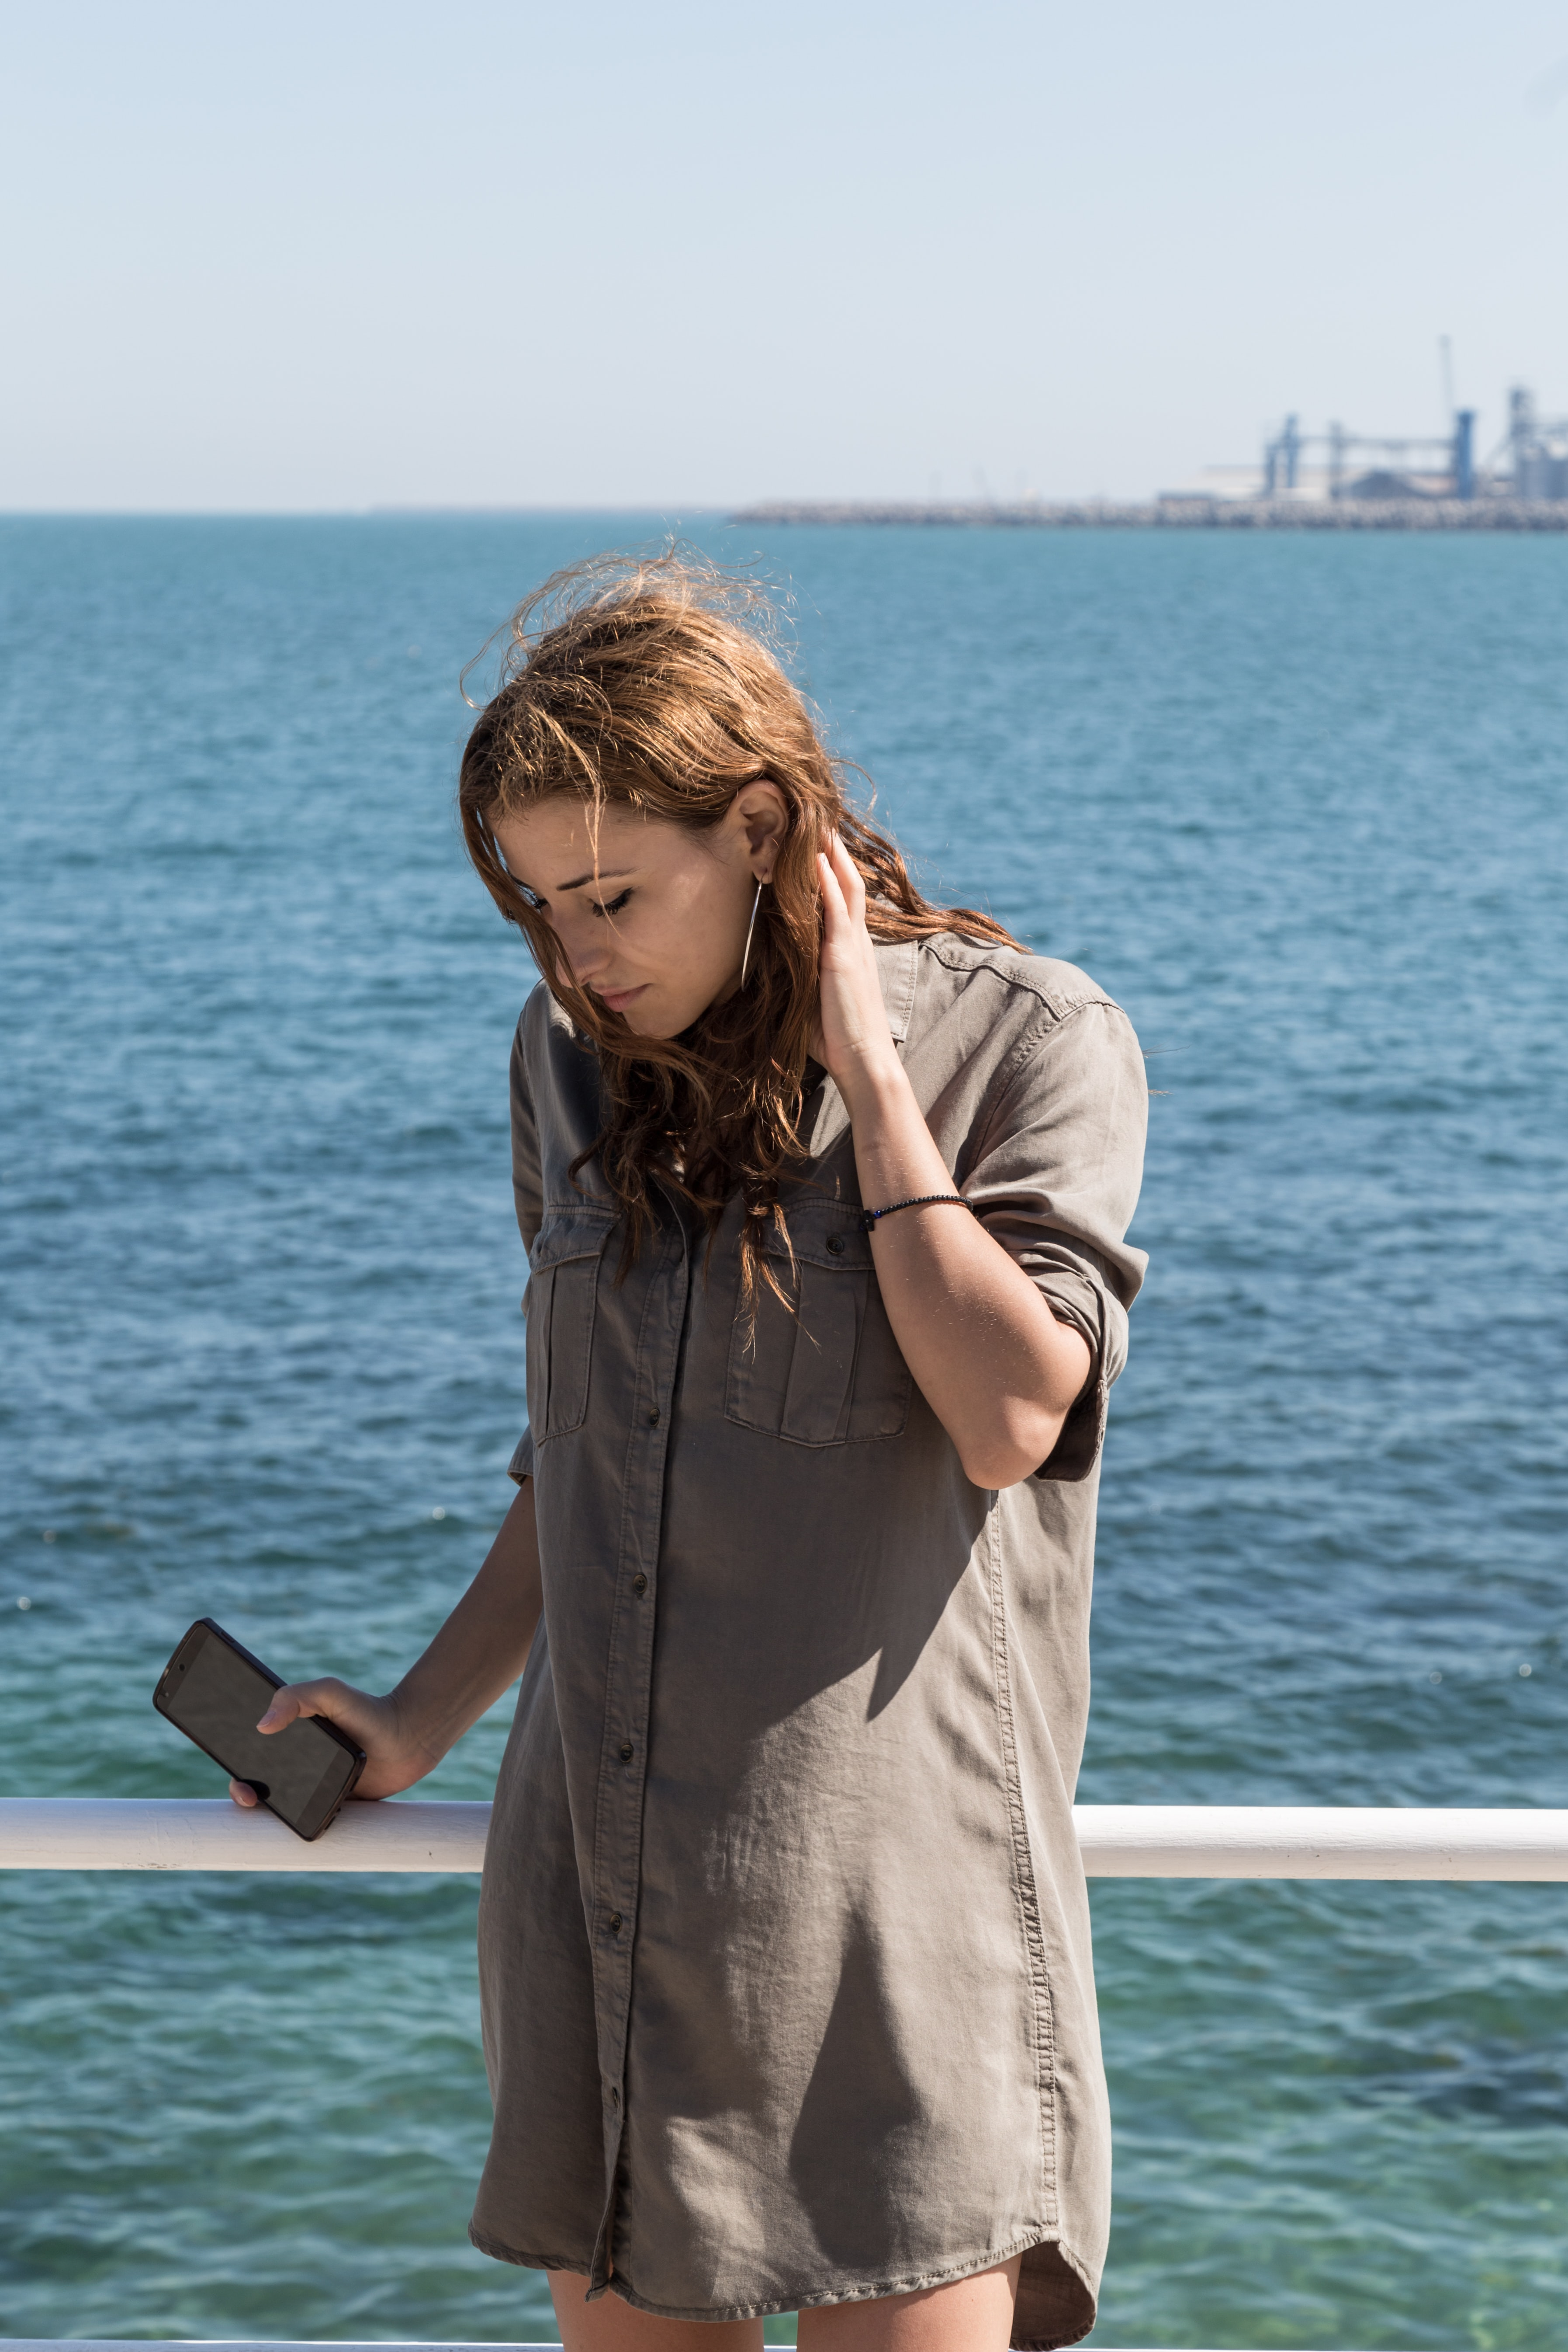 Woman on an ocean ferry holding a smartphone and her hair